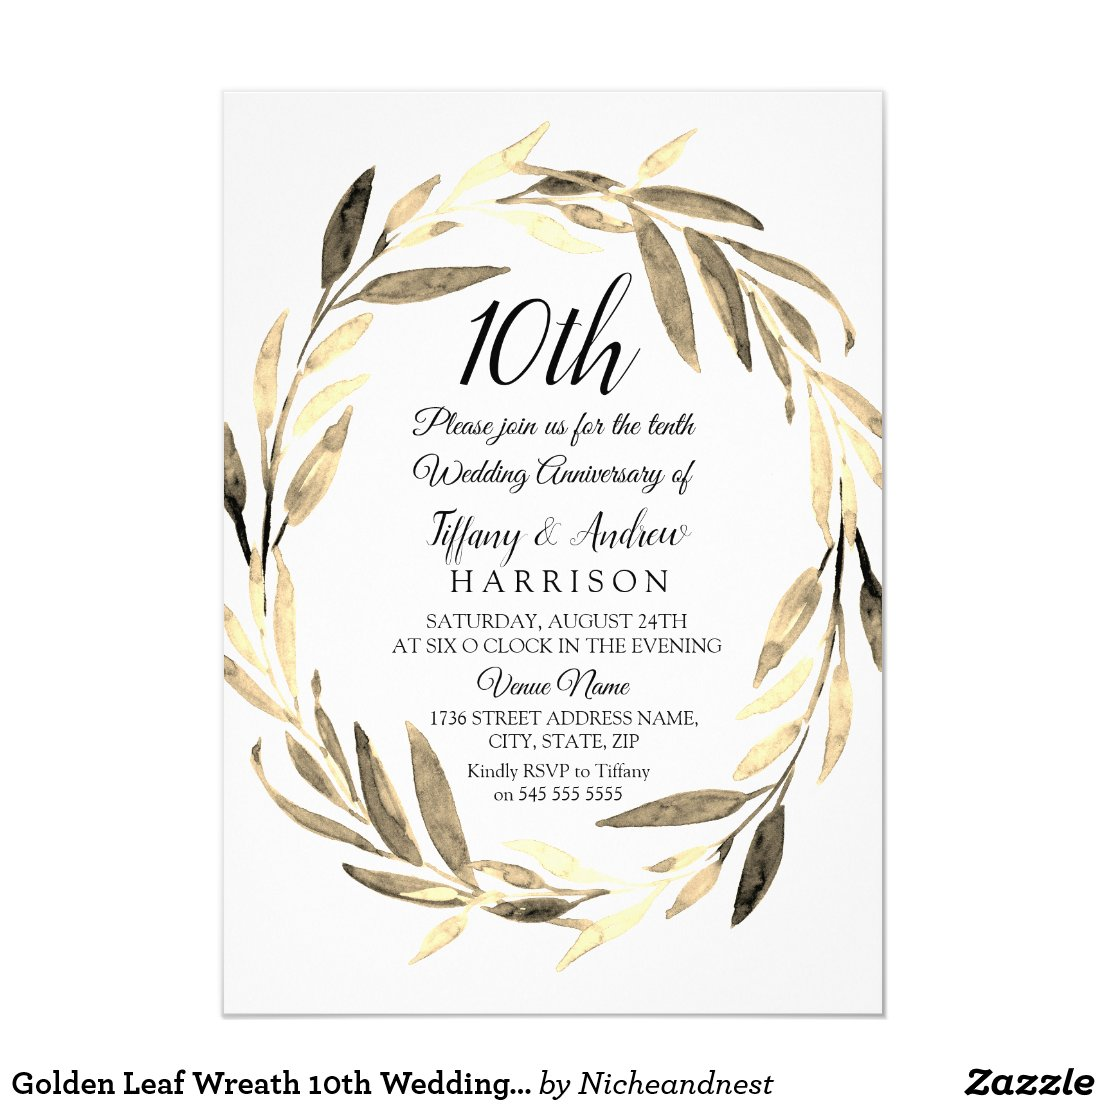 Golden Leaf Wreath 10th Wedding Anniversary Invite